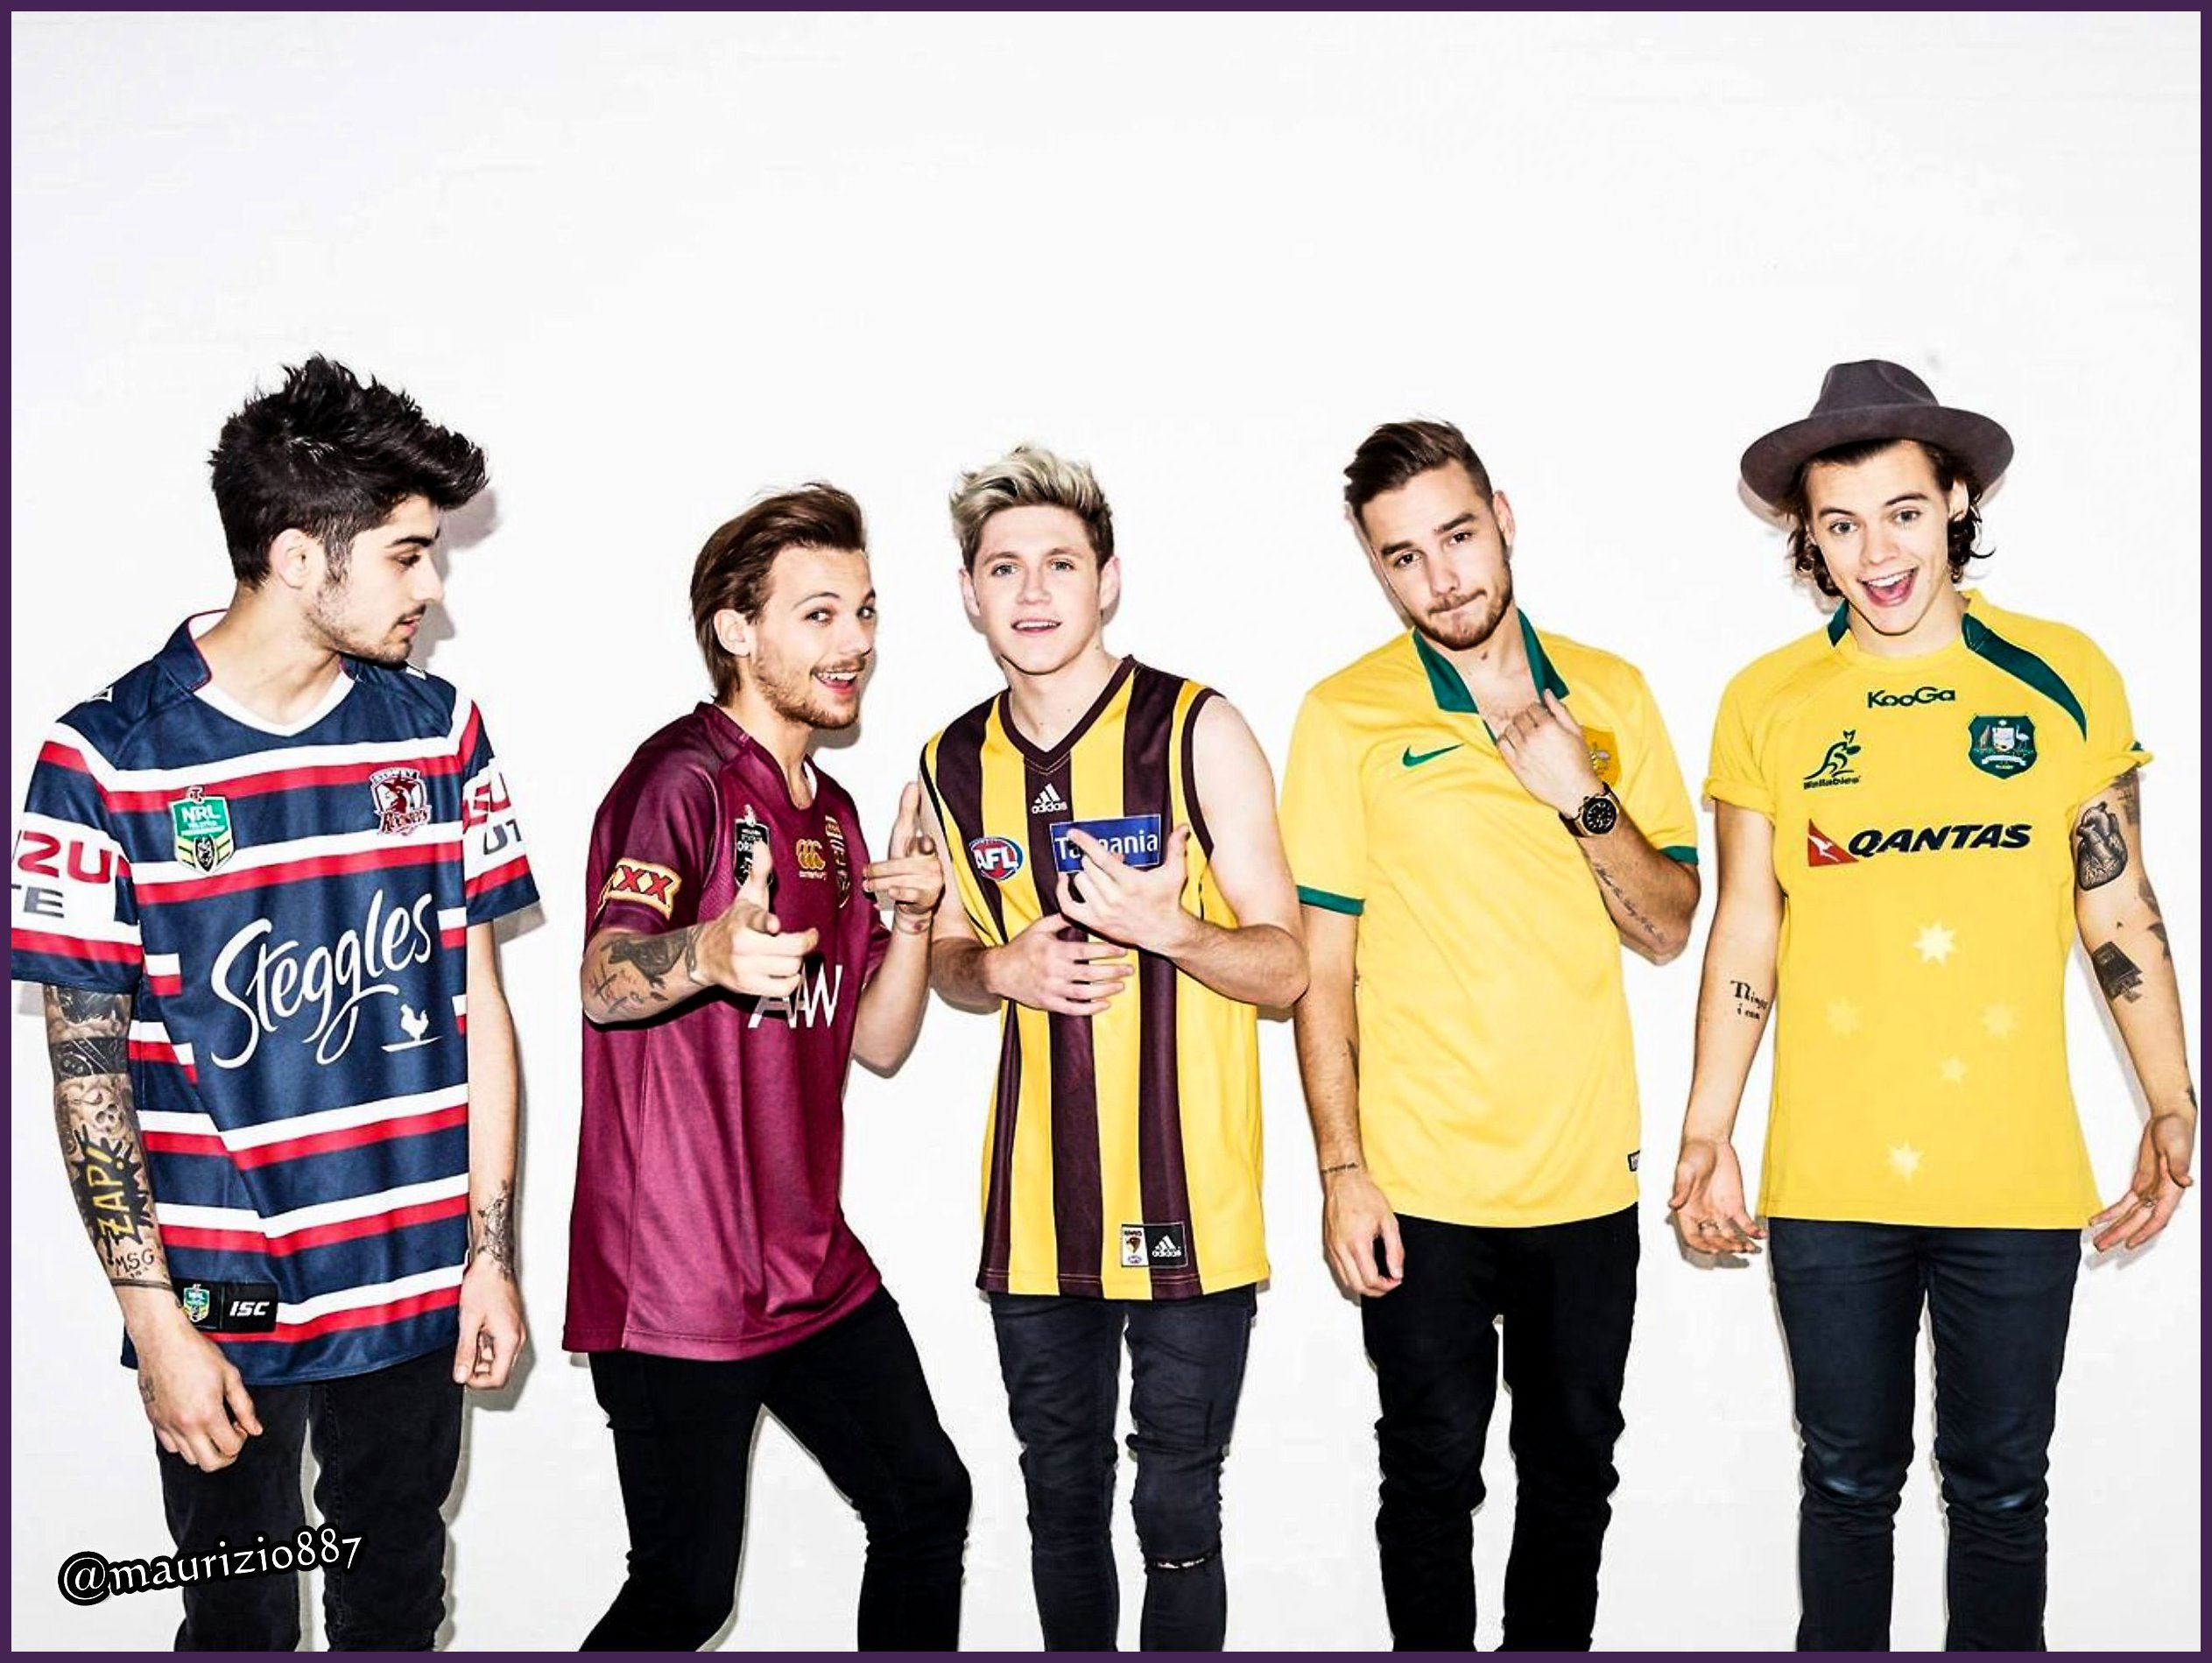 one-direction-photoshoot-2014-one-direction-37098128-2526-1899 jpgOne Direction Photoshoot 2014